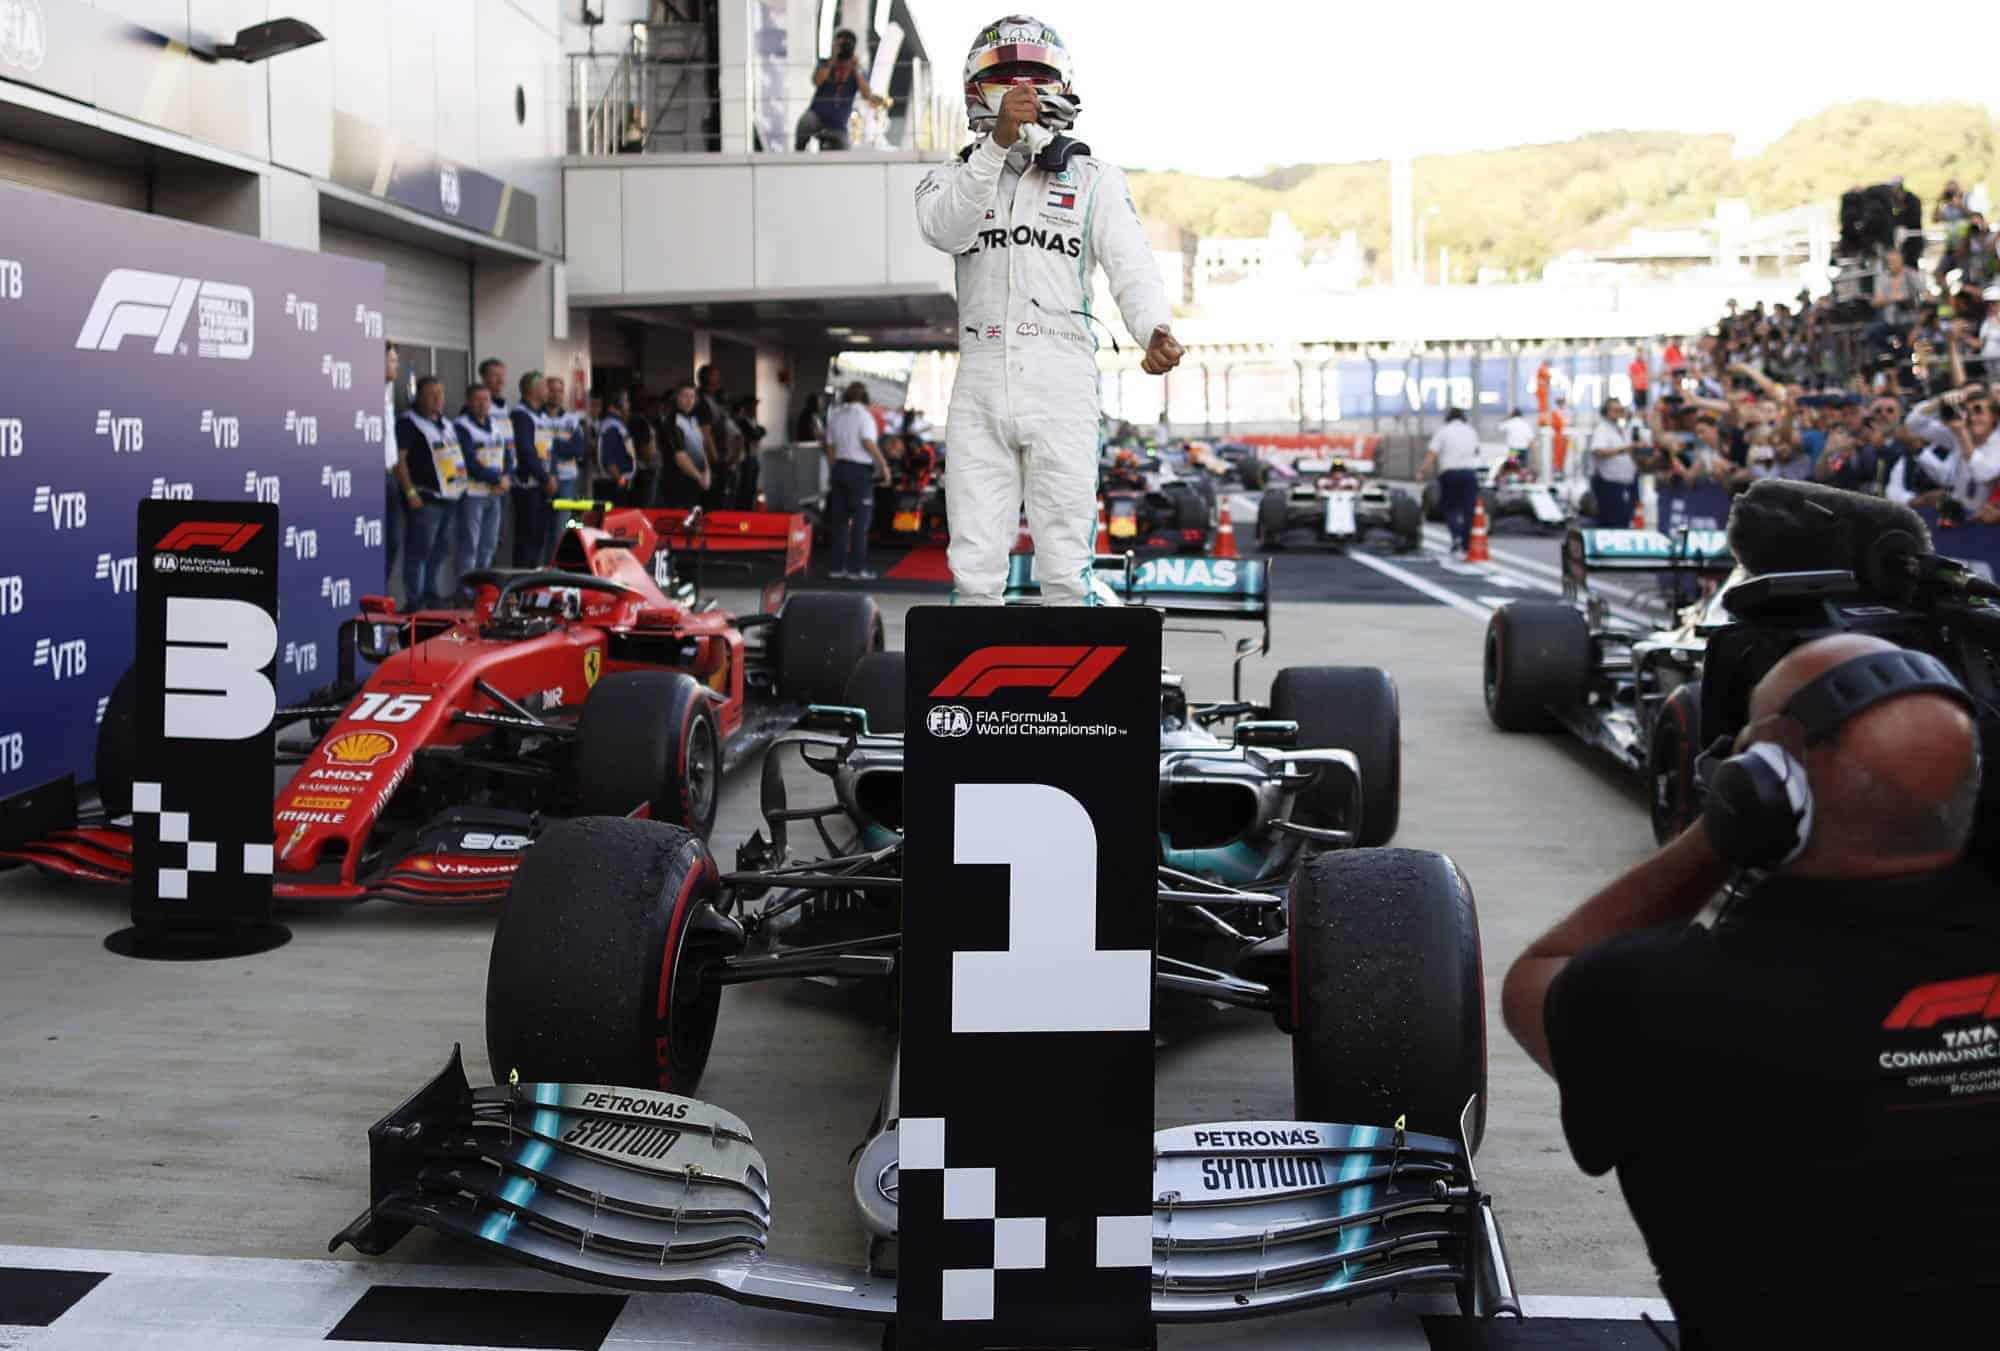 Lewis Hamilton Mercedes Russian GP F1 2019 After the Race celebrating victory on the car Photo Daimler